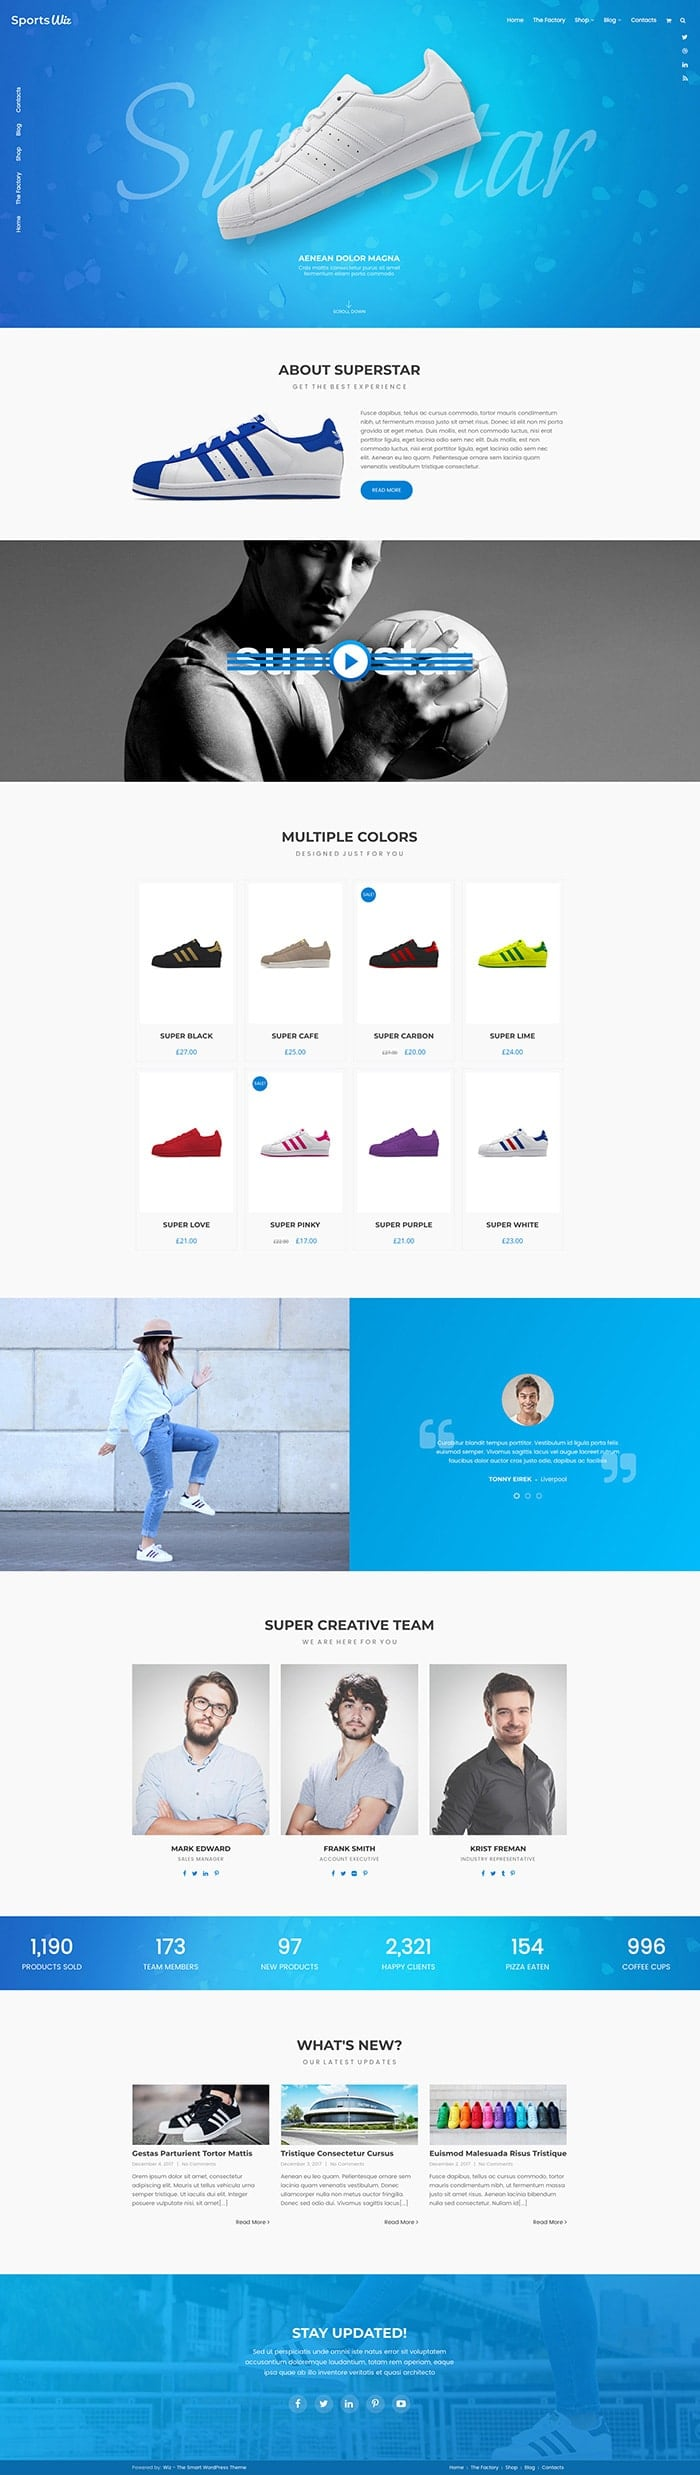 Vertical Image Scroll for Elementor Page Builder